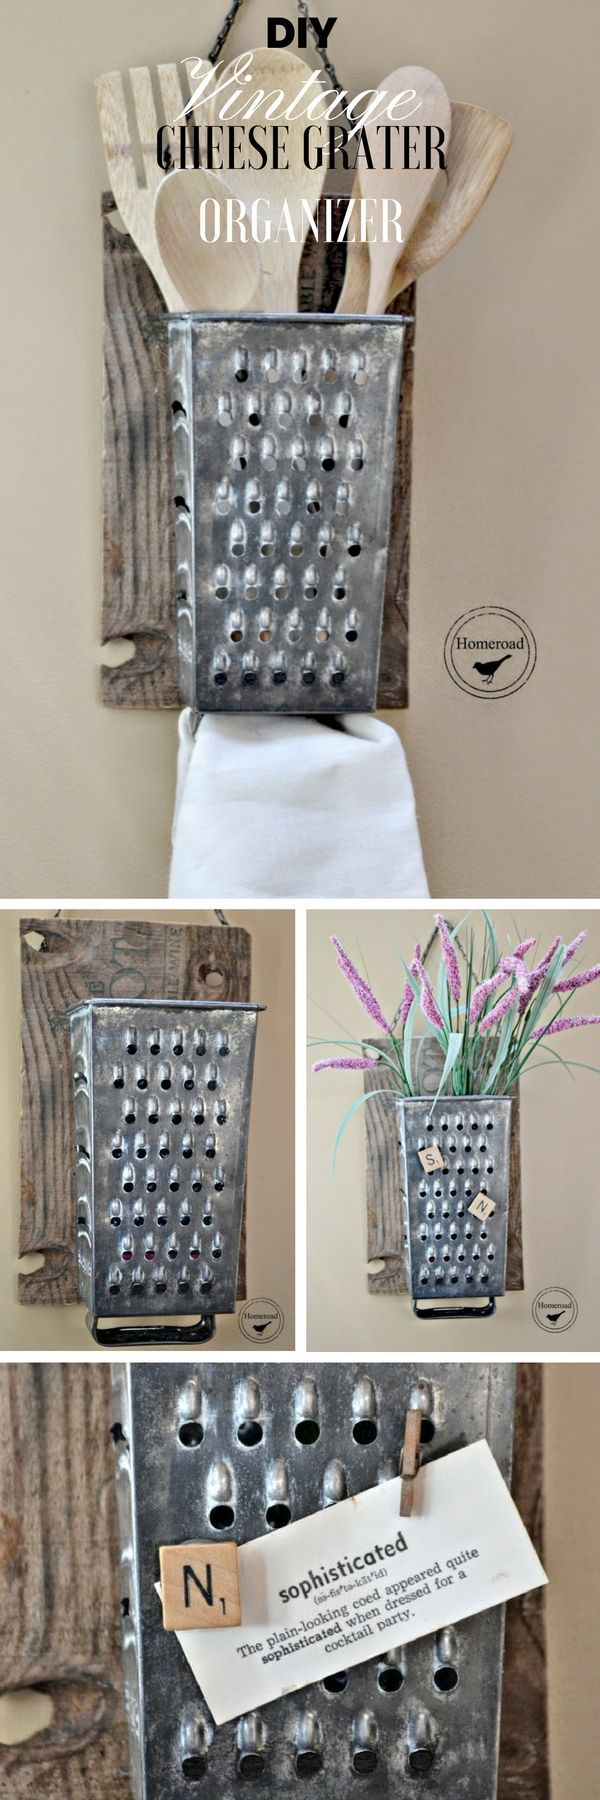 best 25+ vintage kitchen decor ideas on pinterest | vintage diy